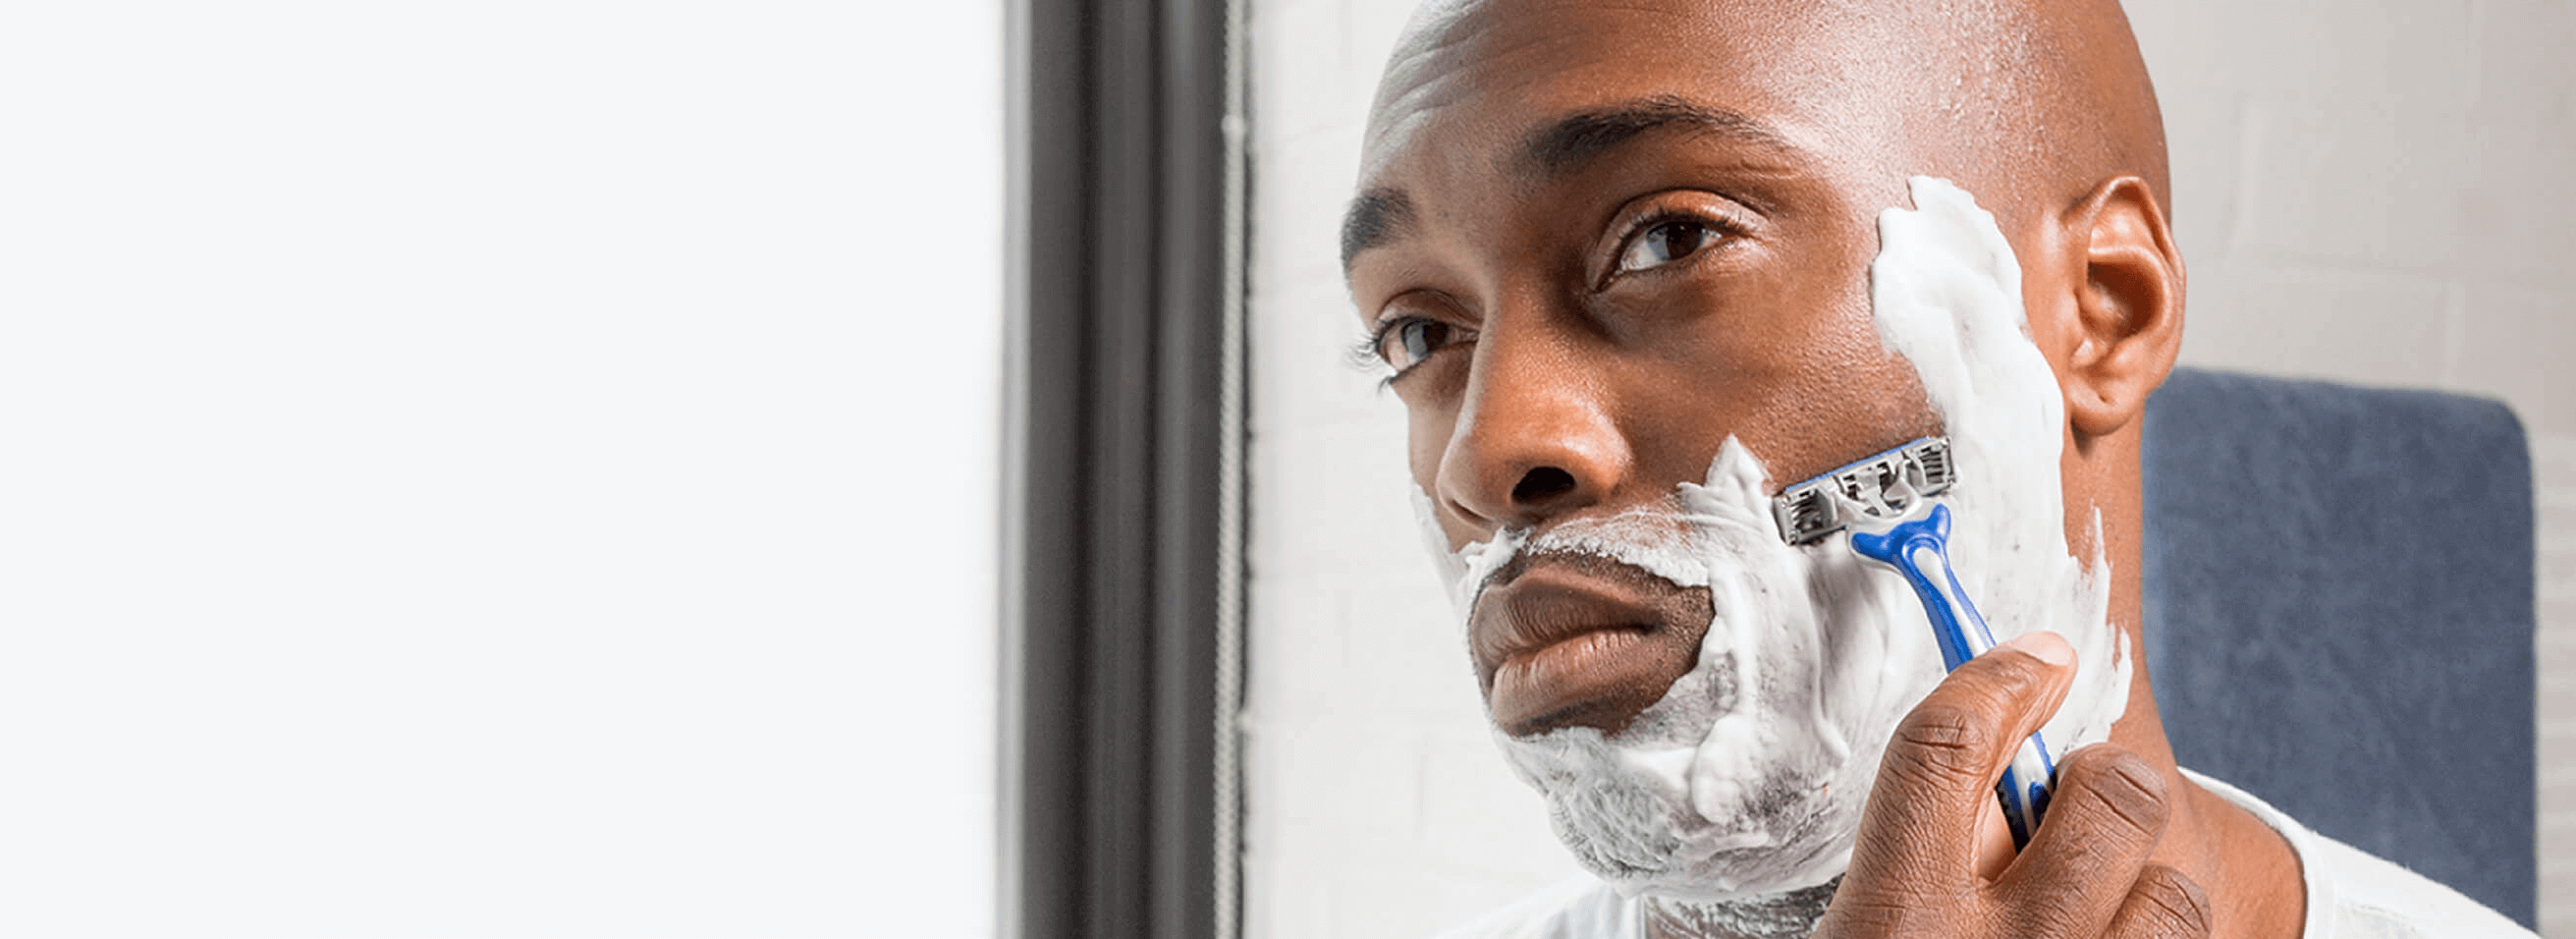 SAVE UP TO 50% OFF WITH OUR SHAVING SETS